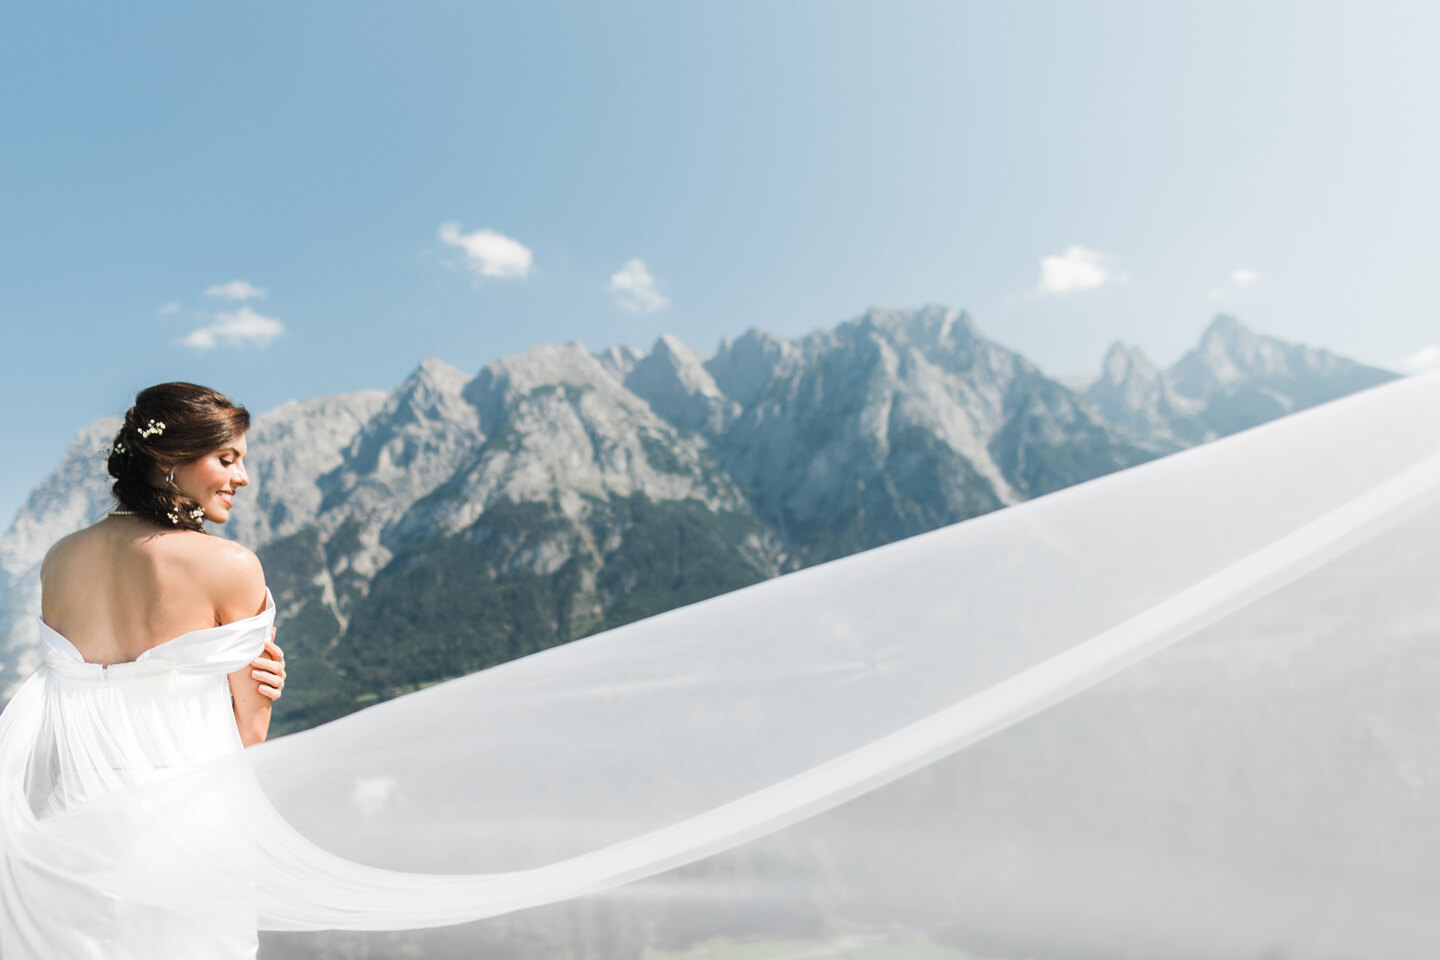 Wedding Photographer in Milan: The bride against the backdrop of luxurious mountains, the plume of her dress is widely dispelled by the wind, thereby emphasizing her fragile figure